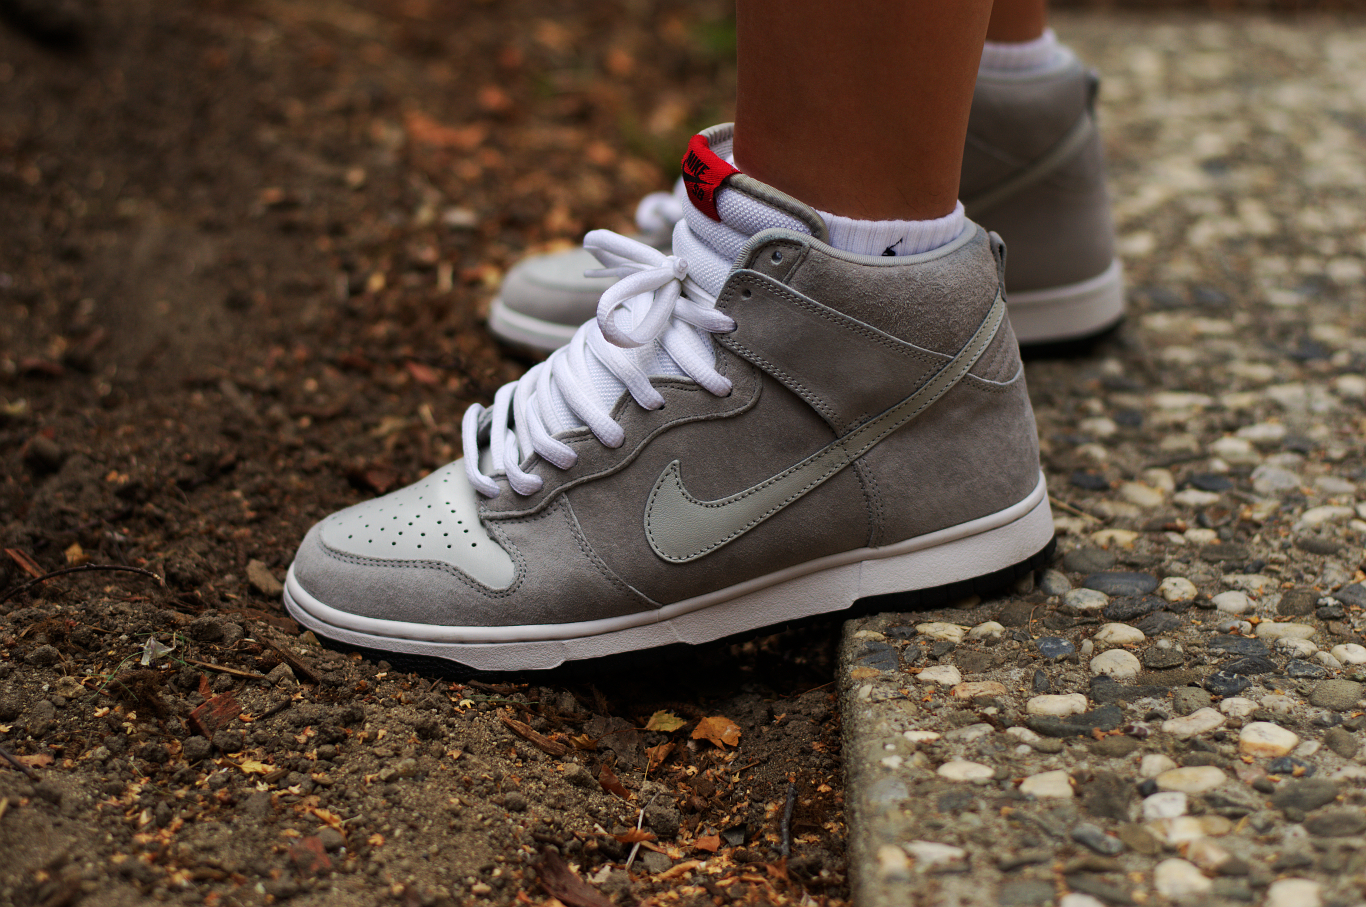 Nike SB Dunk High Pee Wee